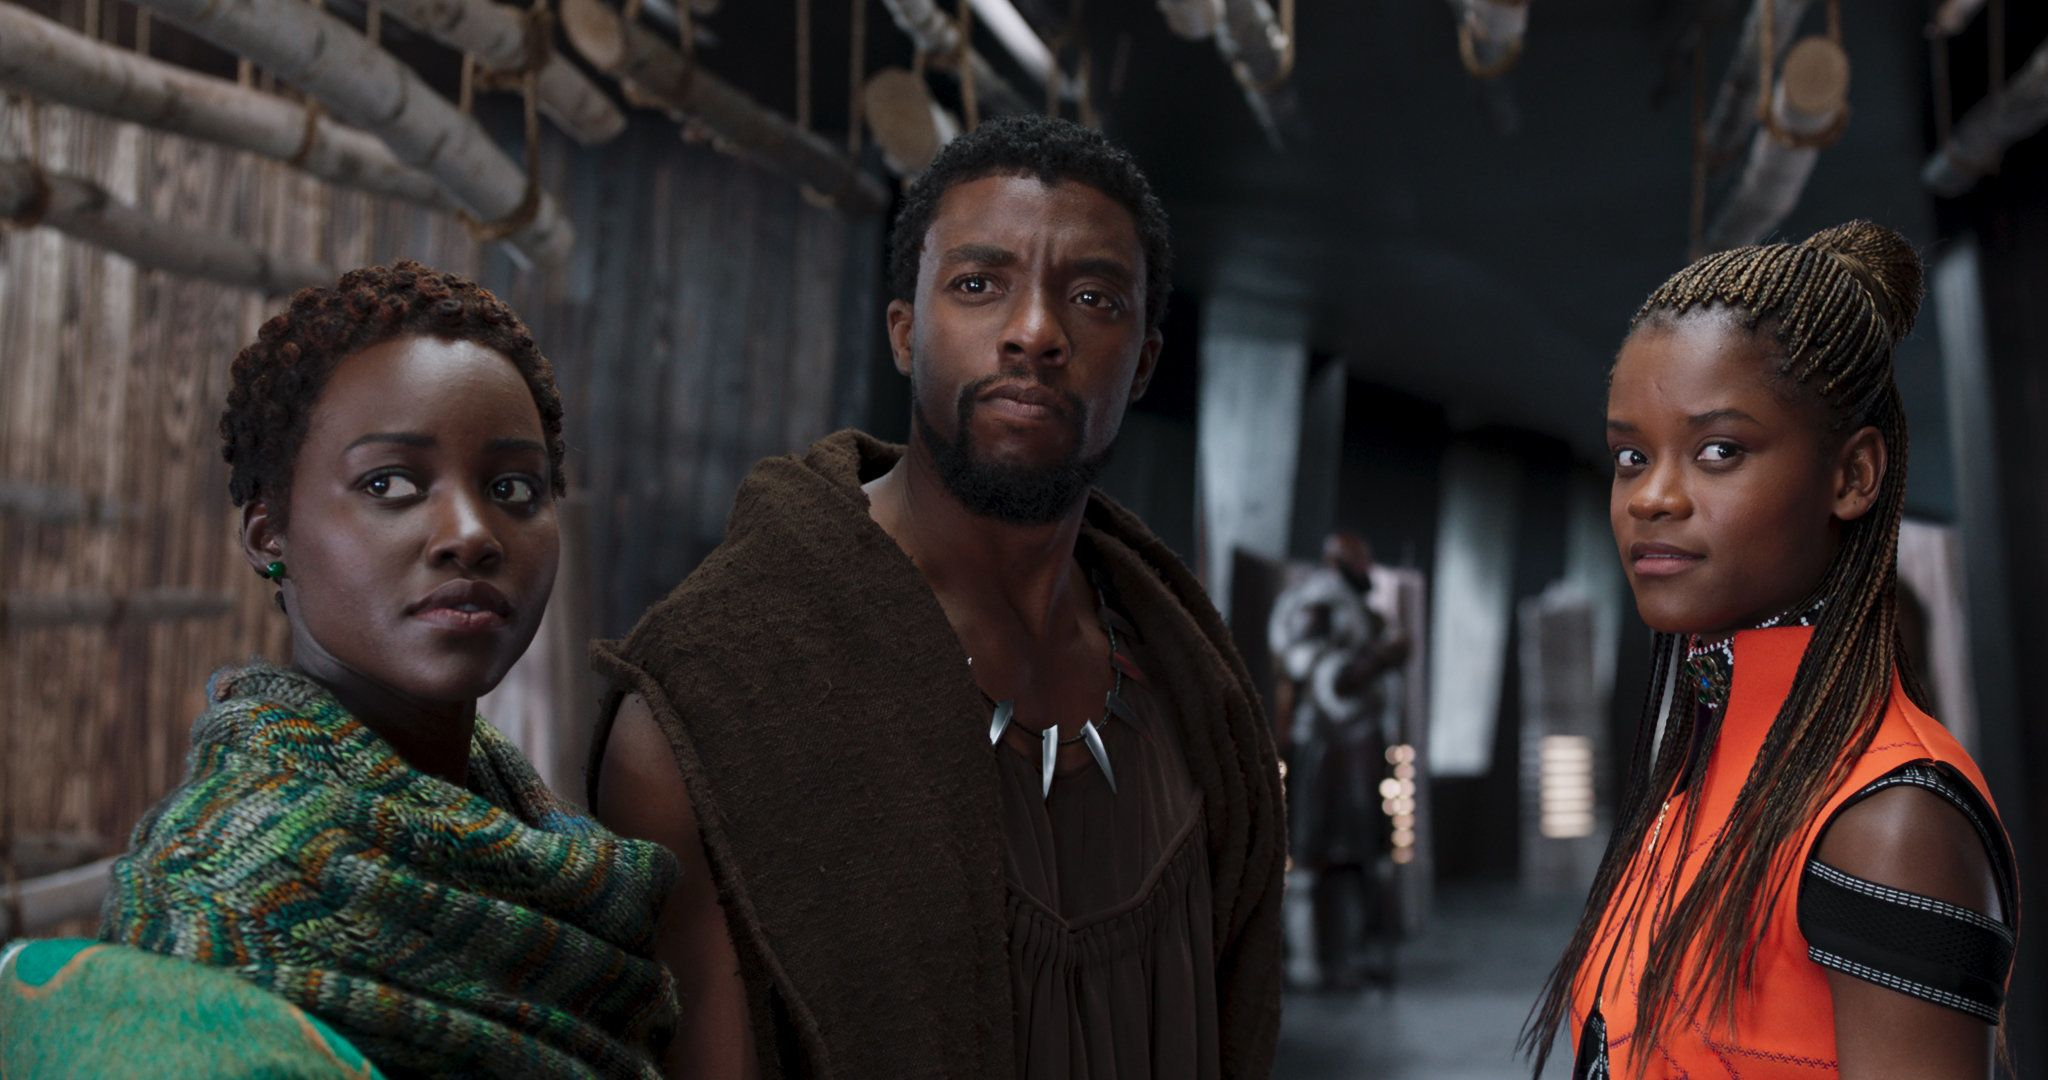 'Black Panther' Is What Superhero Movies Are Meant To Be